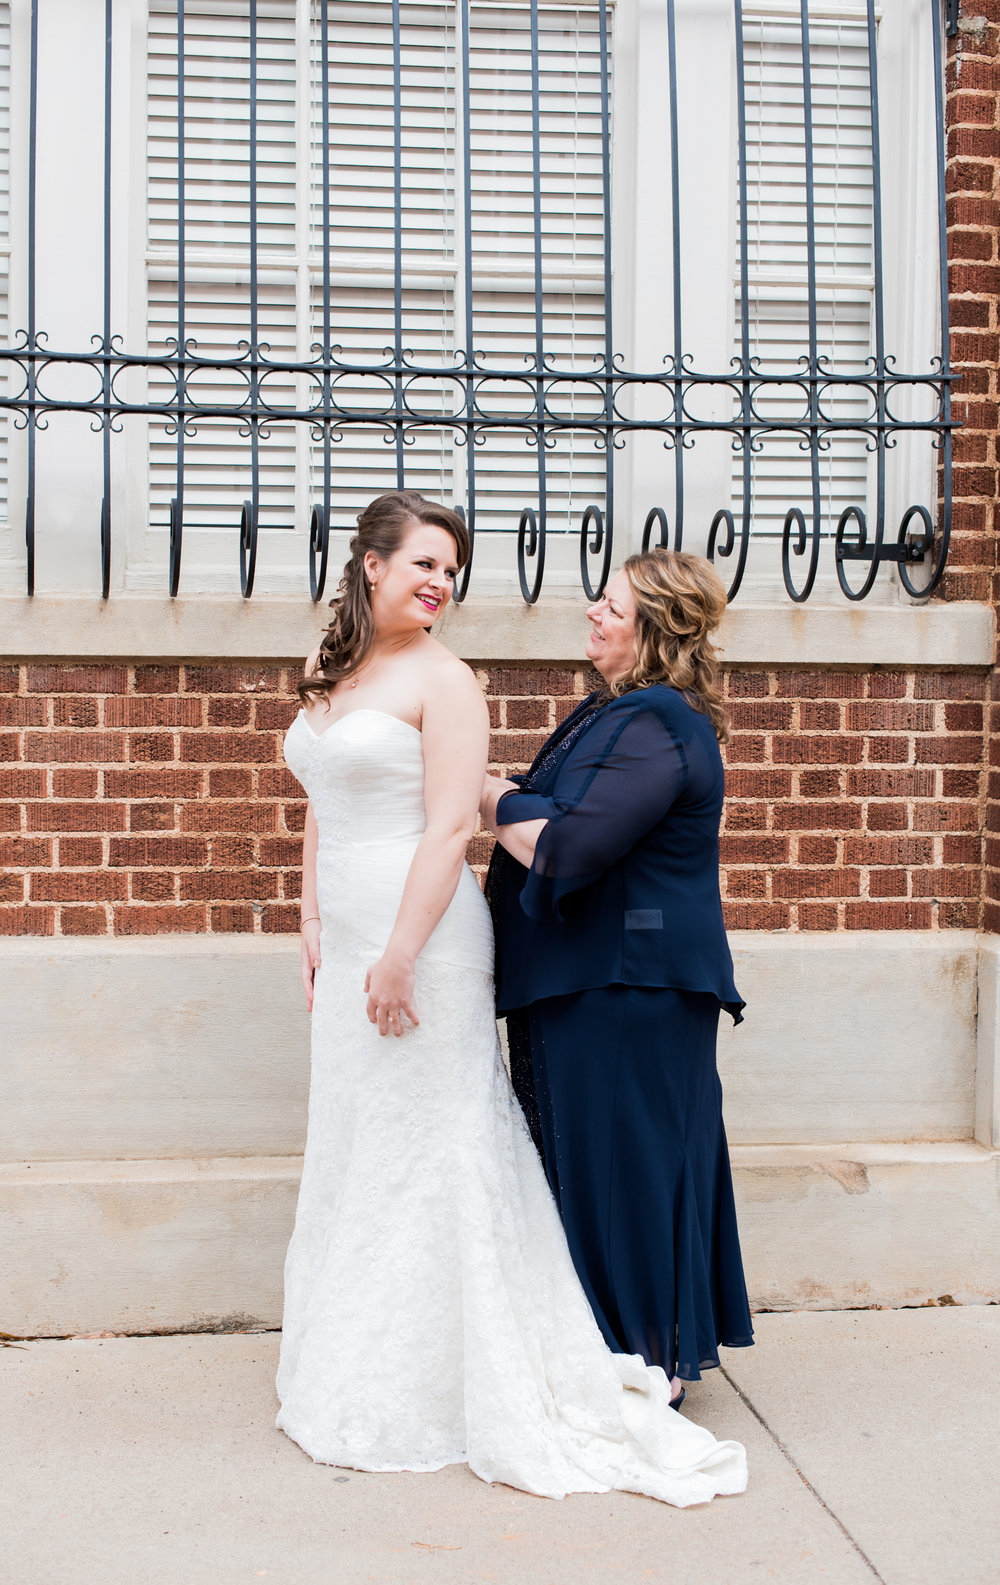 Kasey + Dillon: Elegant Hometown Wedding at the Davenport, Greer, South Carolina | Palmetto State Weddings